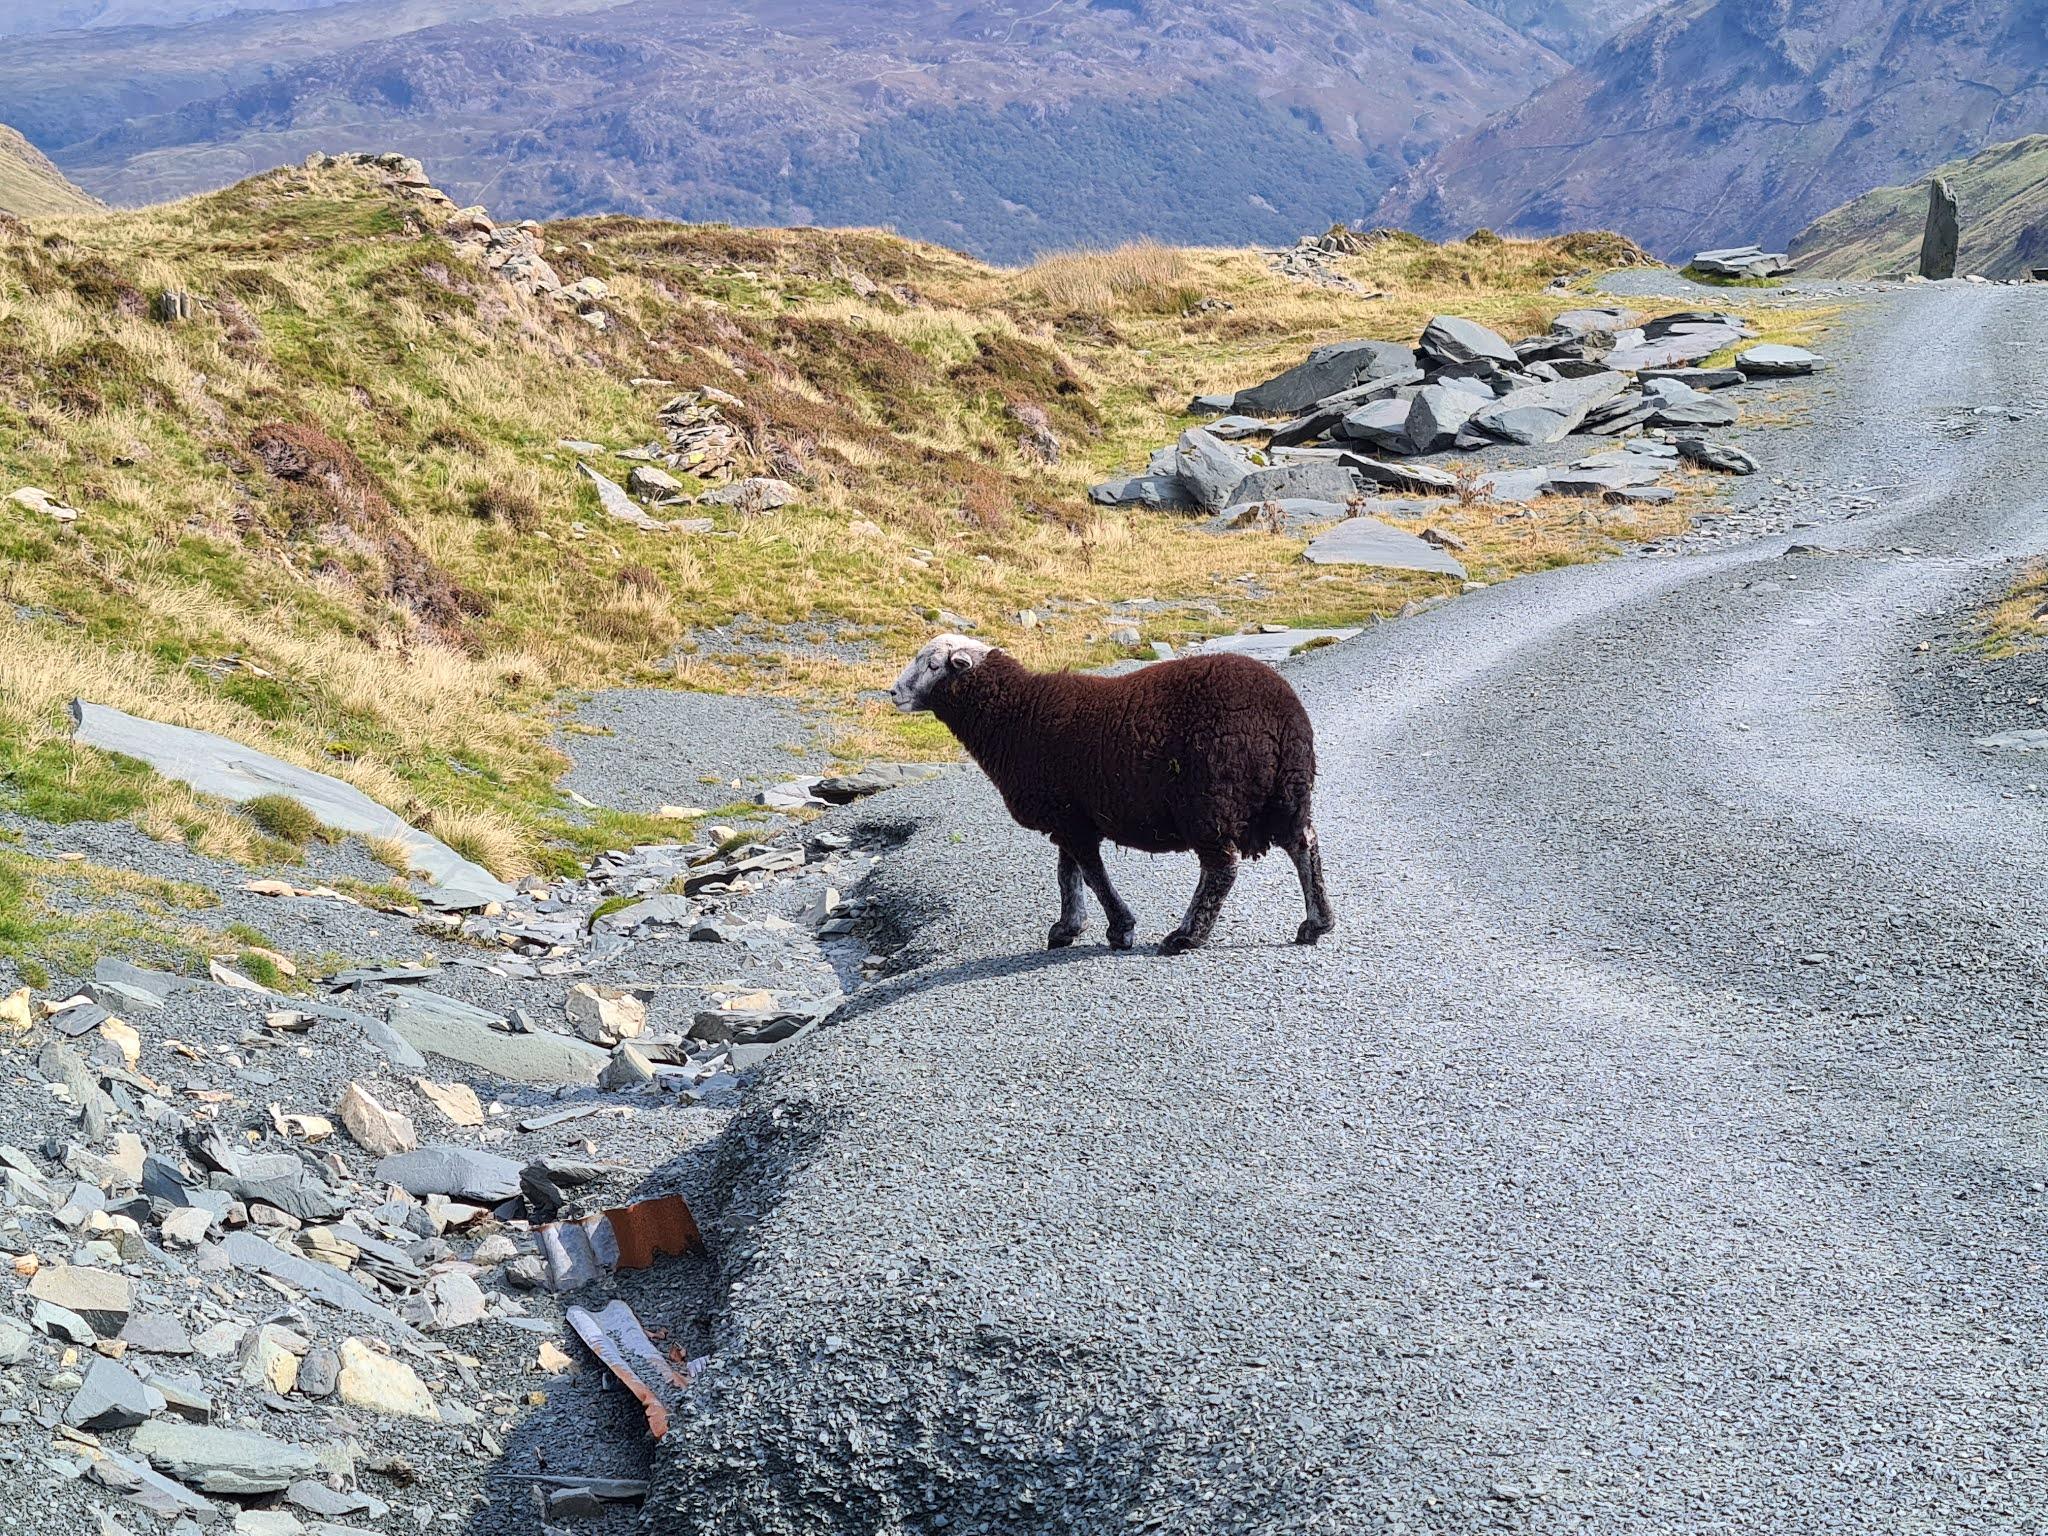 Herdy lamb at Honister in the Lake District